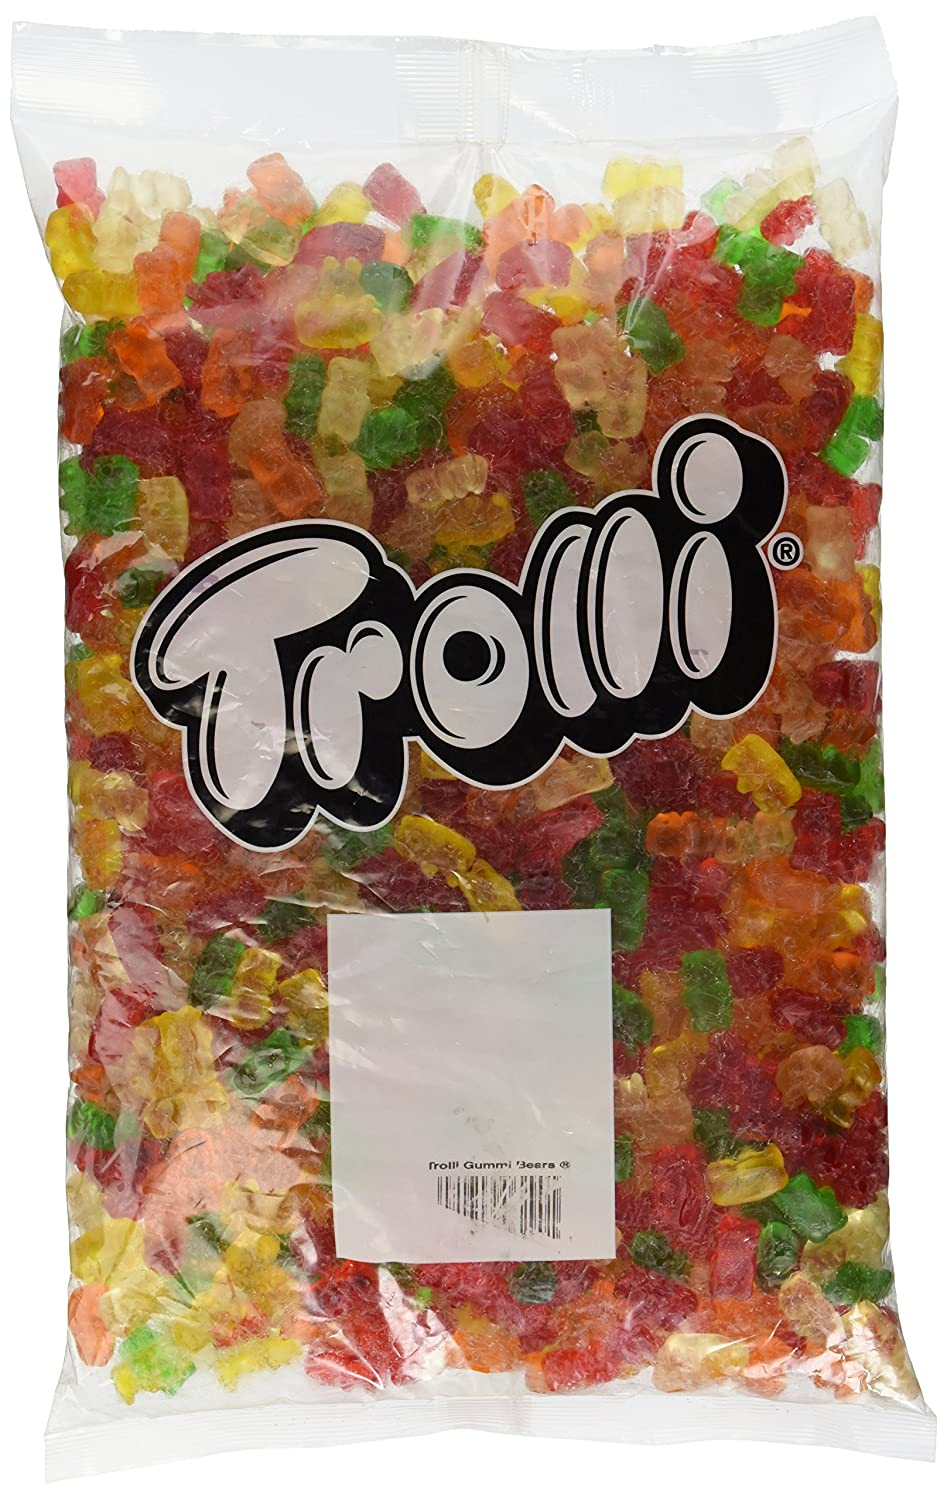 Haribo gummy bears are just one of many products that thomas - Amazon Com Trolli Gummy Bears Candy 5 Pound Bulk Candy Bag Trolli Giant Gummy Bears Grocery Gourmet Food